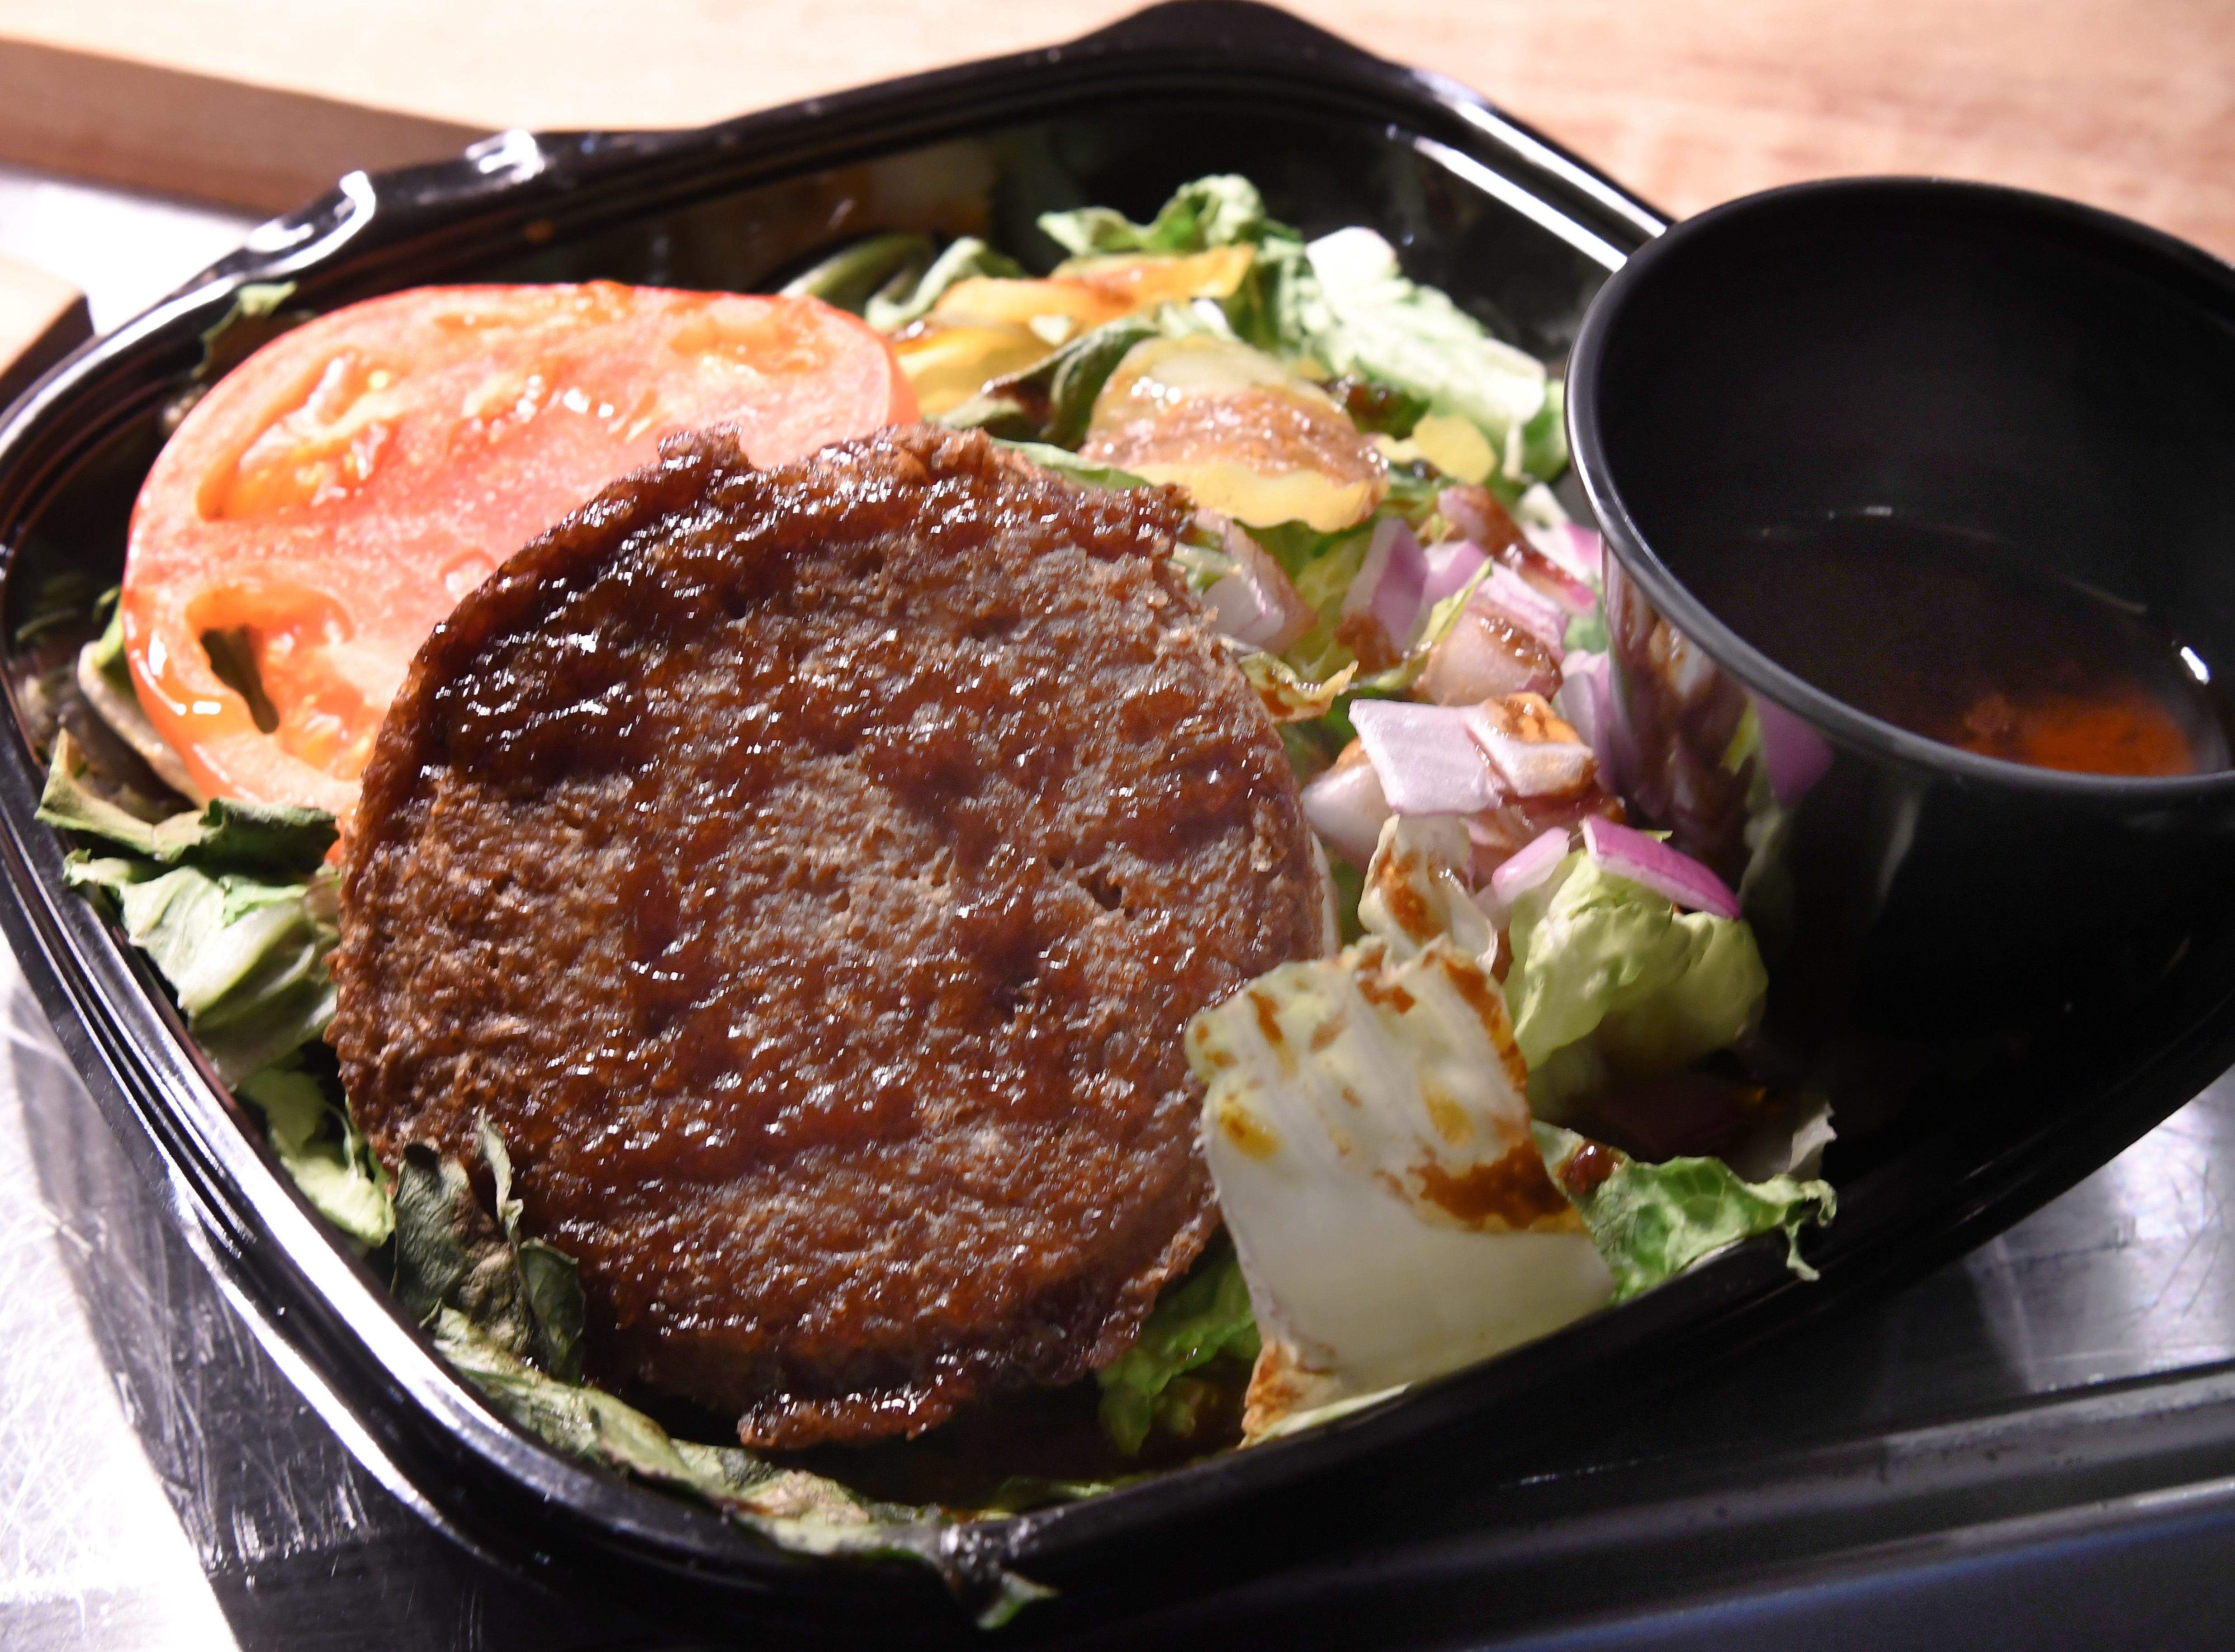 """""""Beyond Burger Bowl"""" consisting of a plant baed burger that looks and satisfies like beef on a bed of lettuce with tomatoes, onions and a pickle balsamic dressing."""